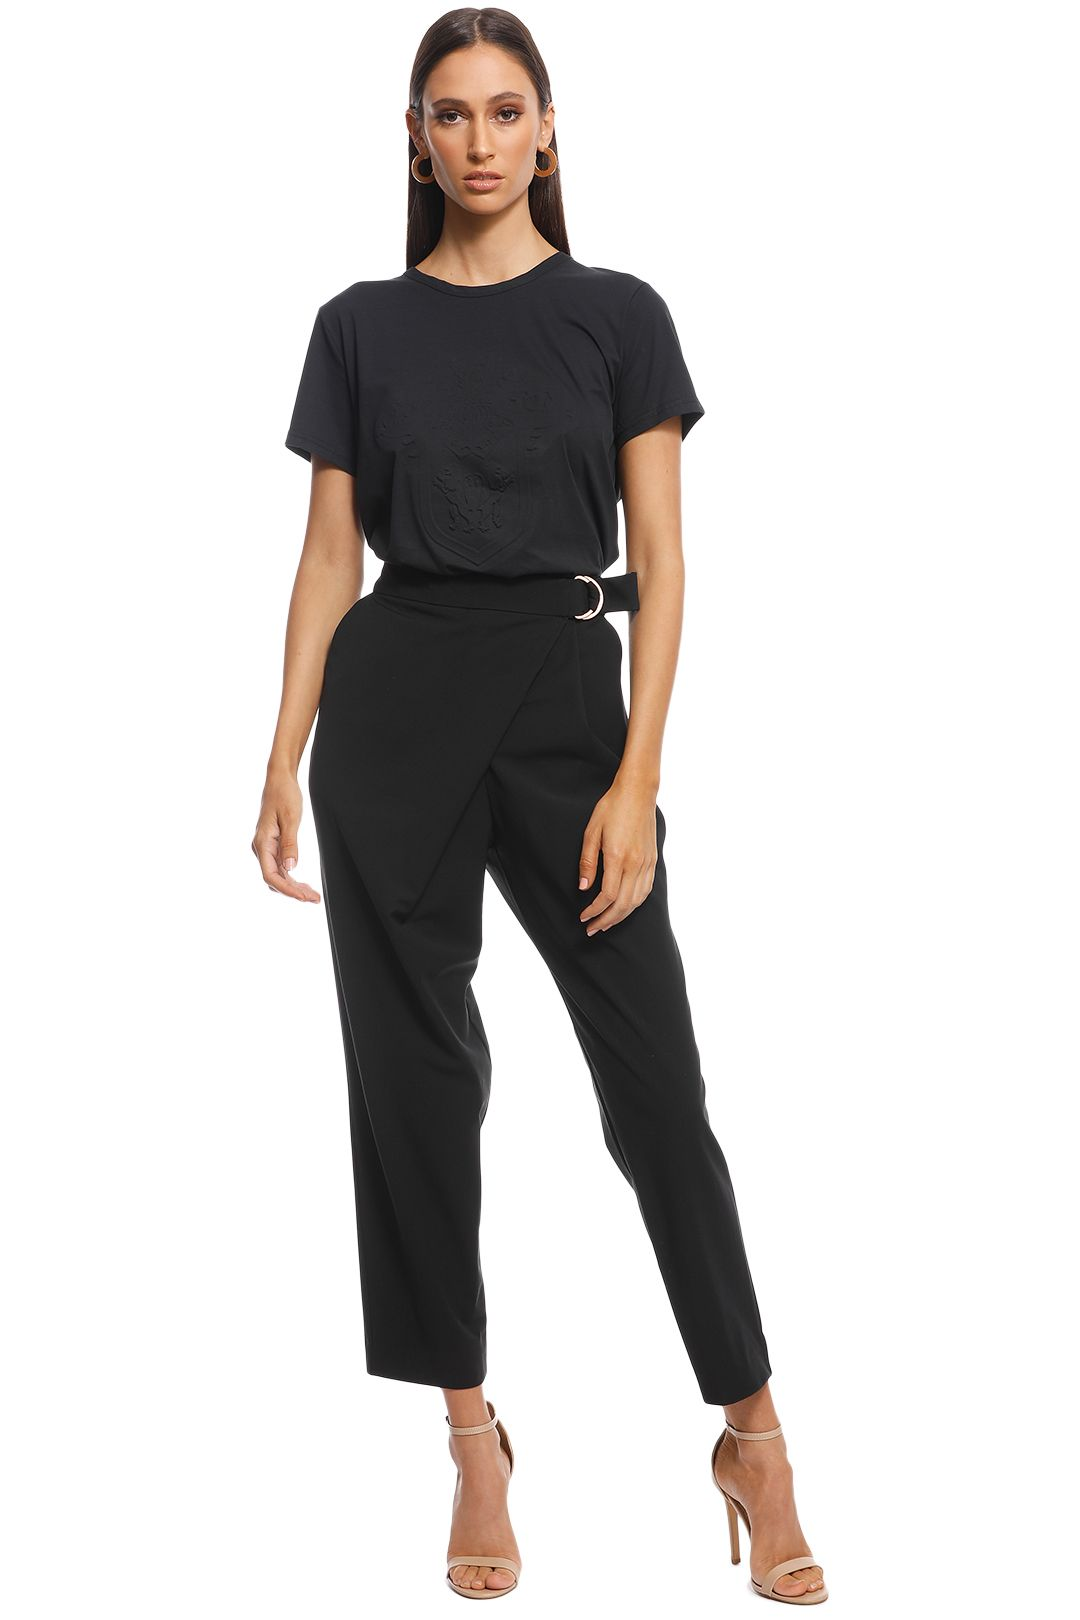 Ginger & Smart - Absence Pant - Black - Front